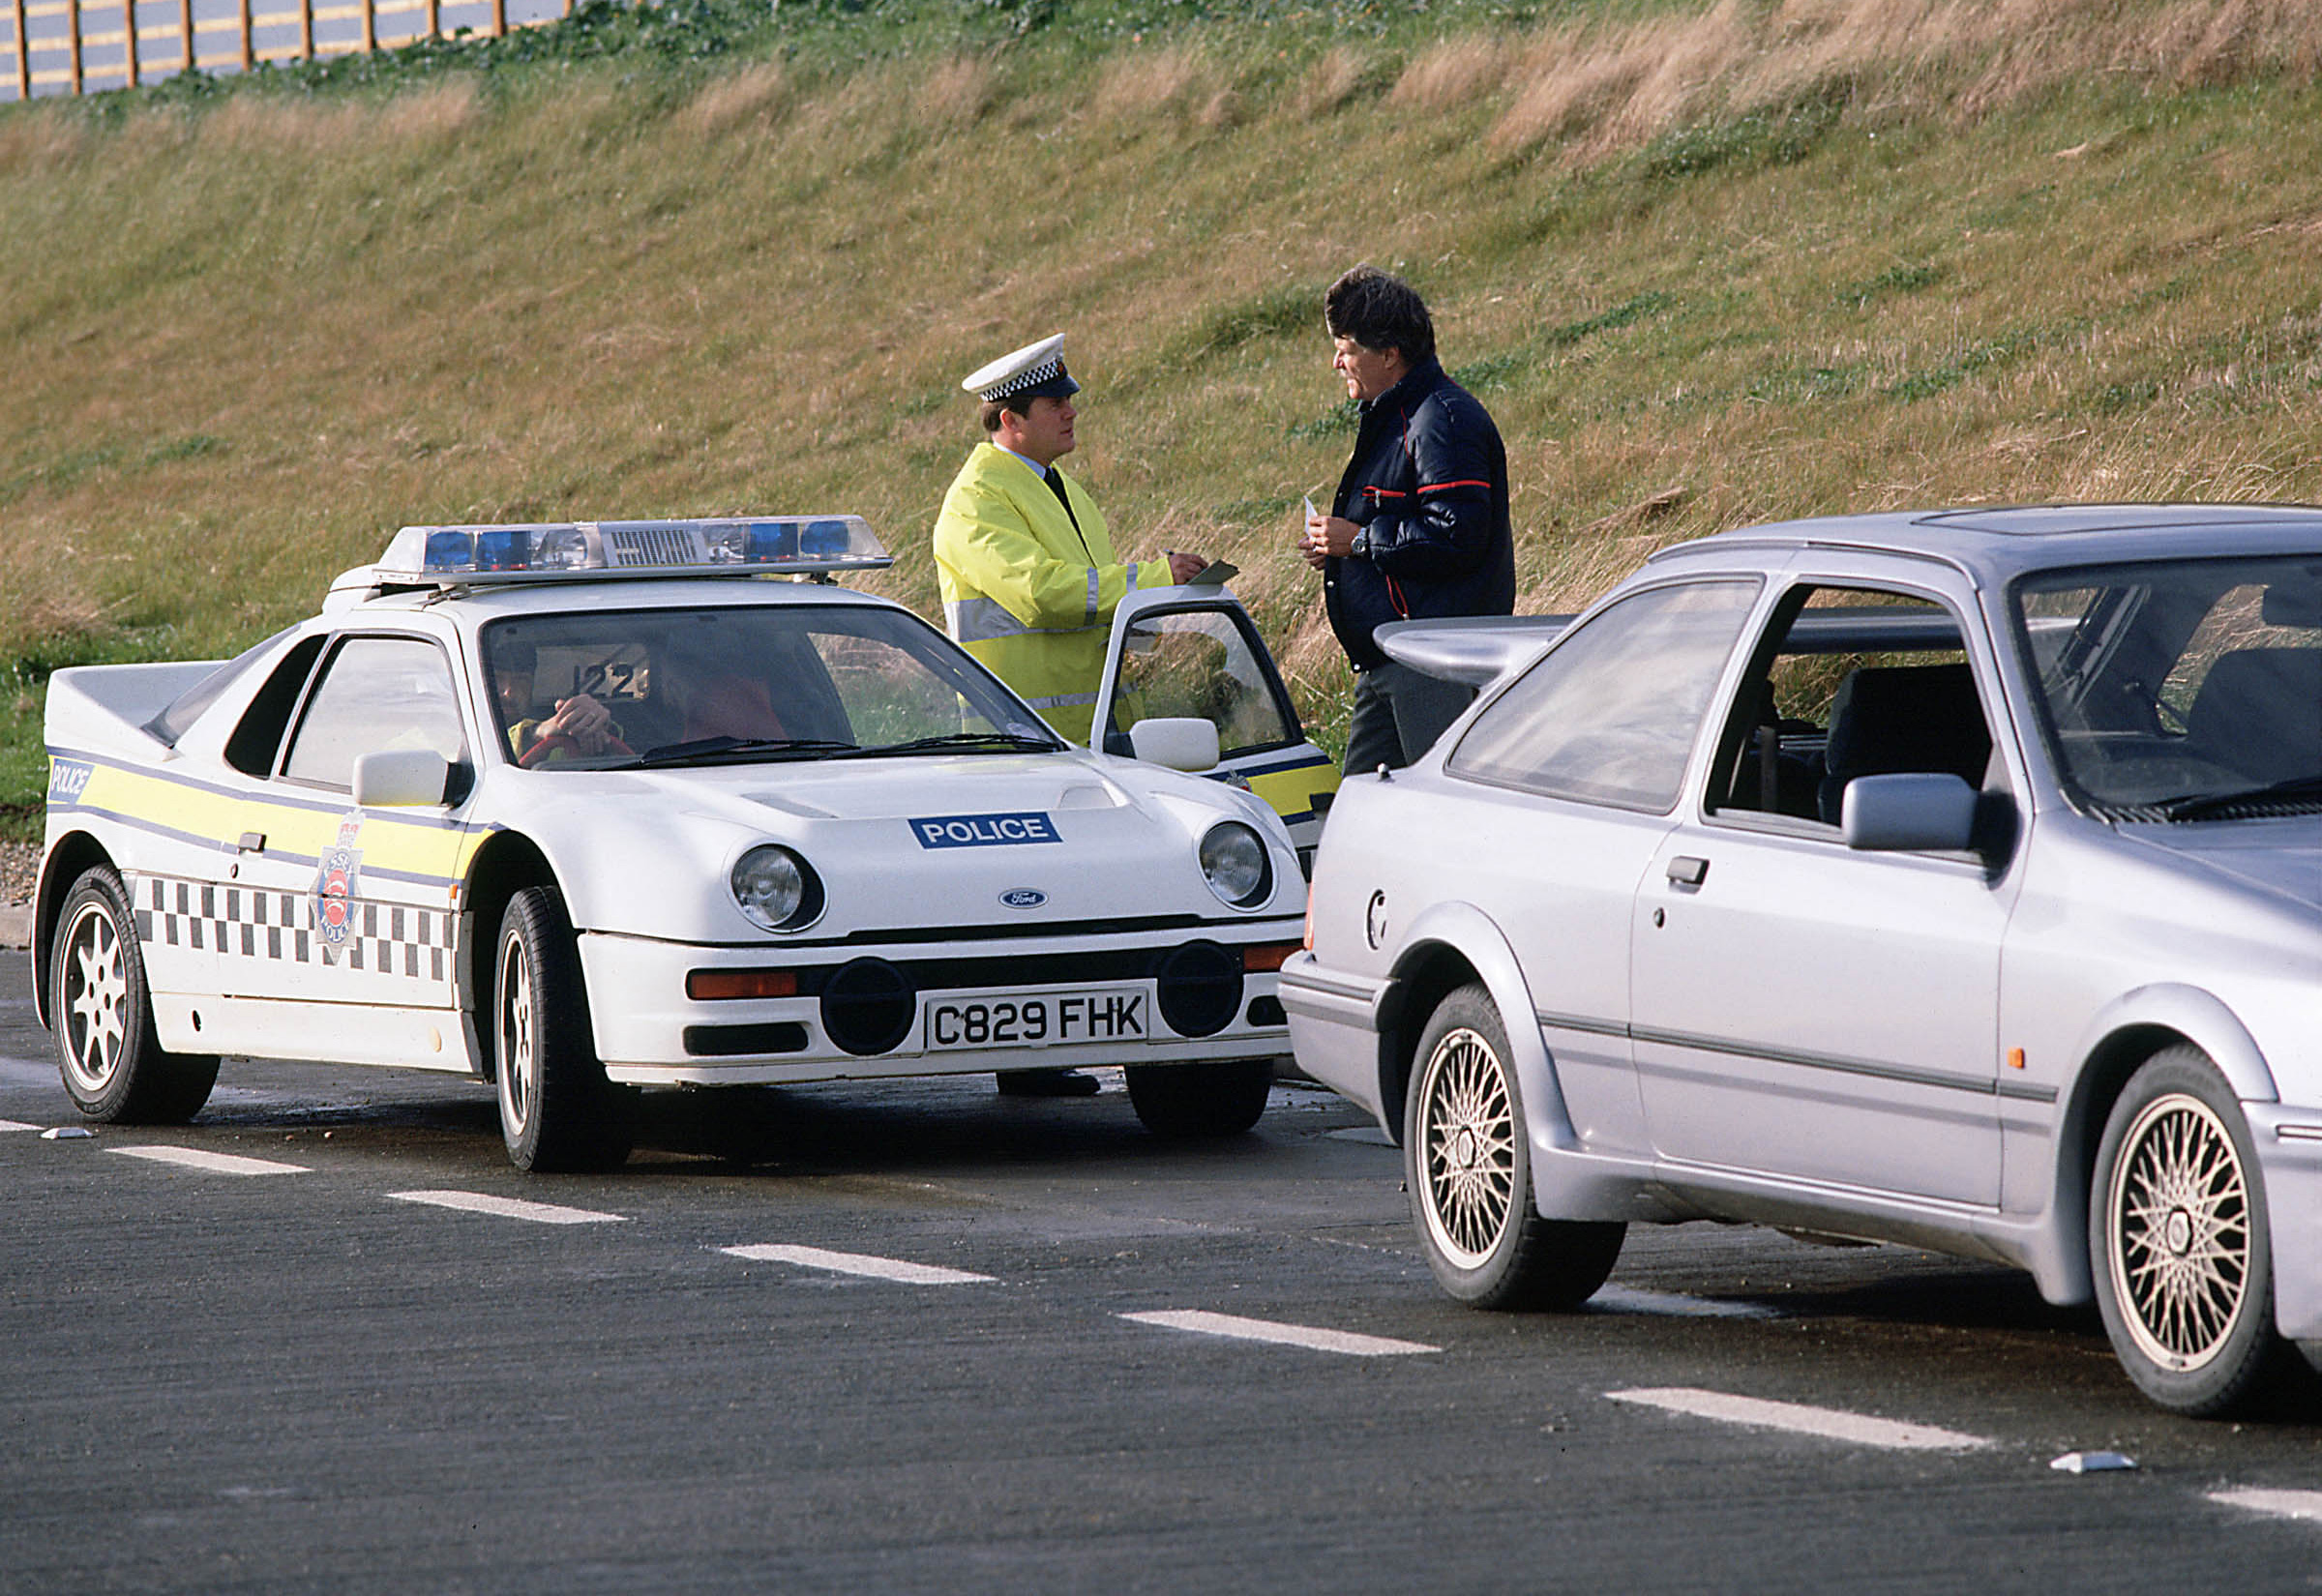 1987_Ford_RS200_-_Police_car_001_8581.jpg